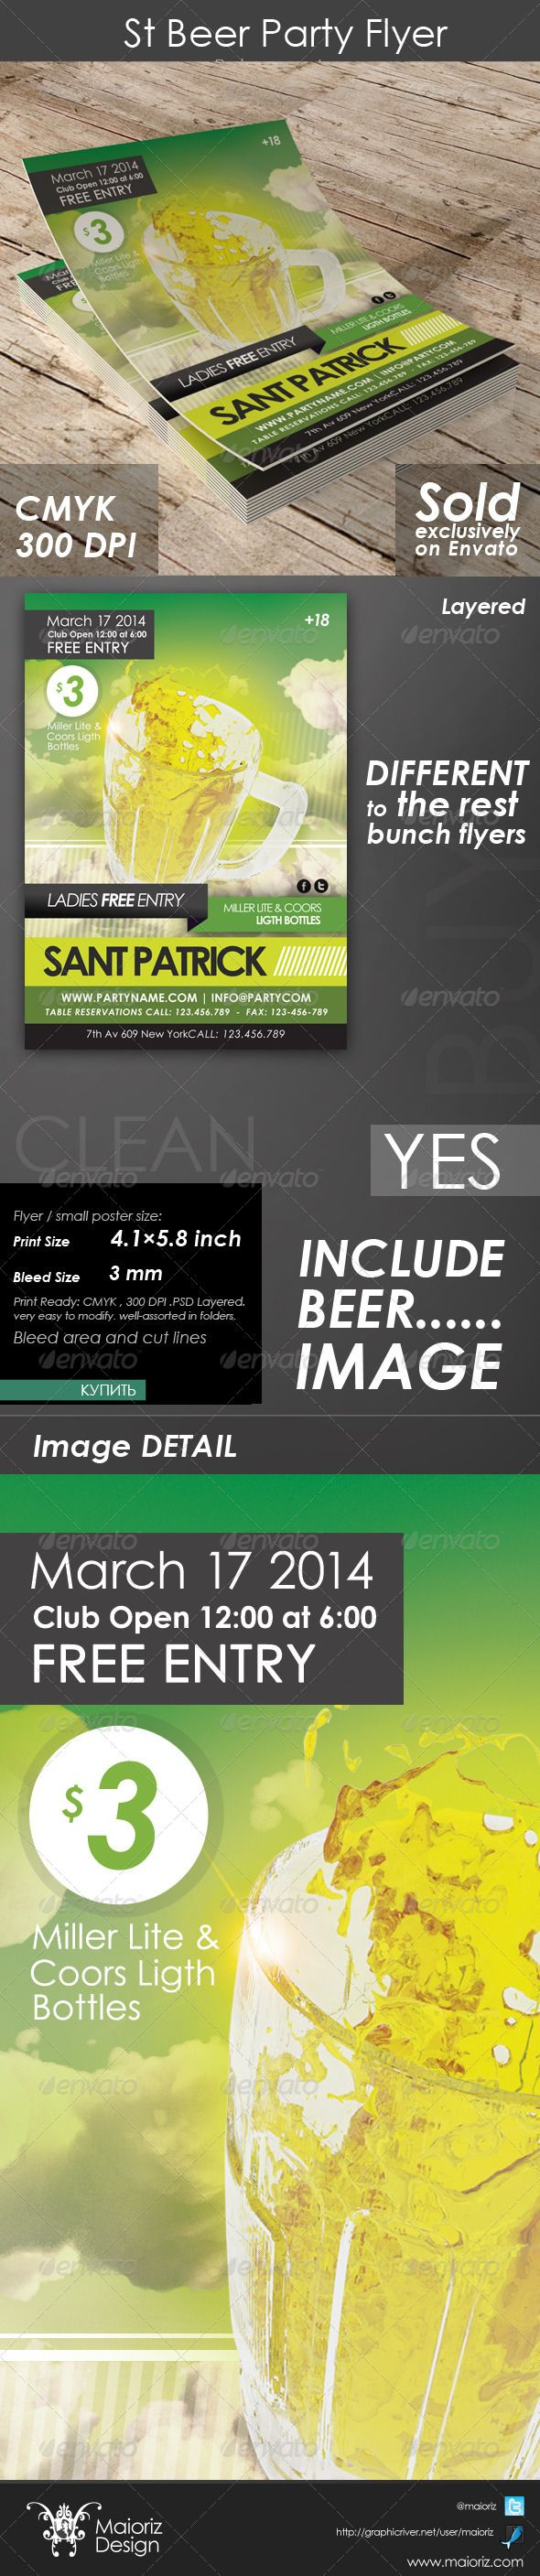 St Beer Party Flyer $6 – #SaintPatrick #Beer #Club #Disco #Pub #Bar #Event #Flye…